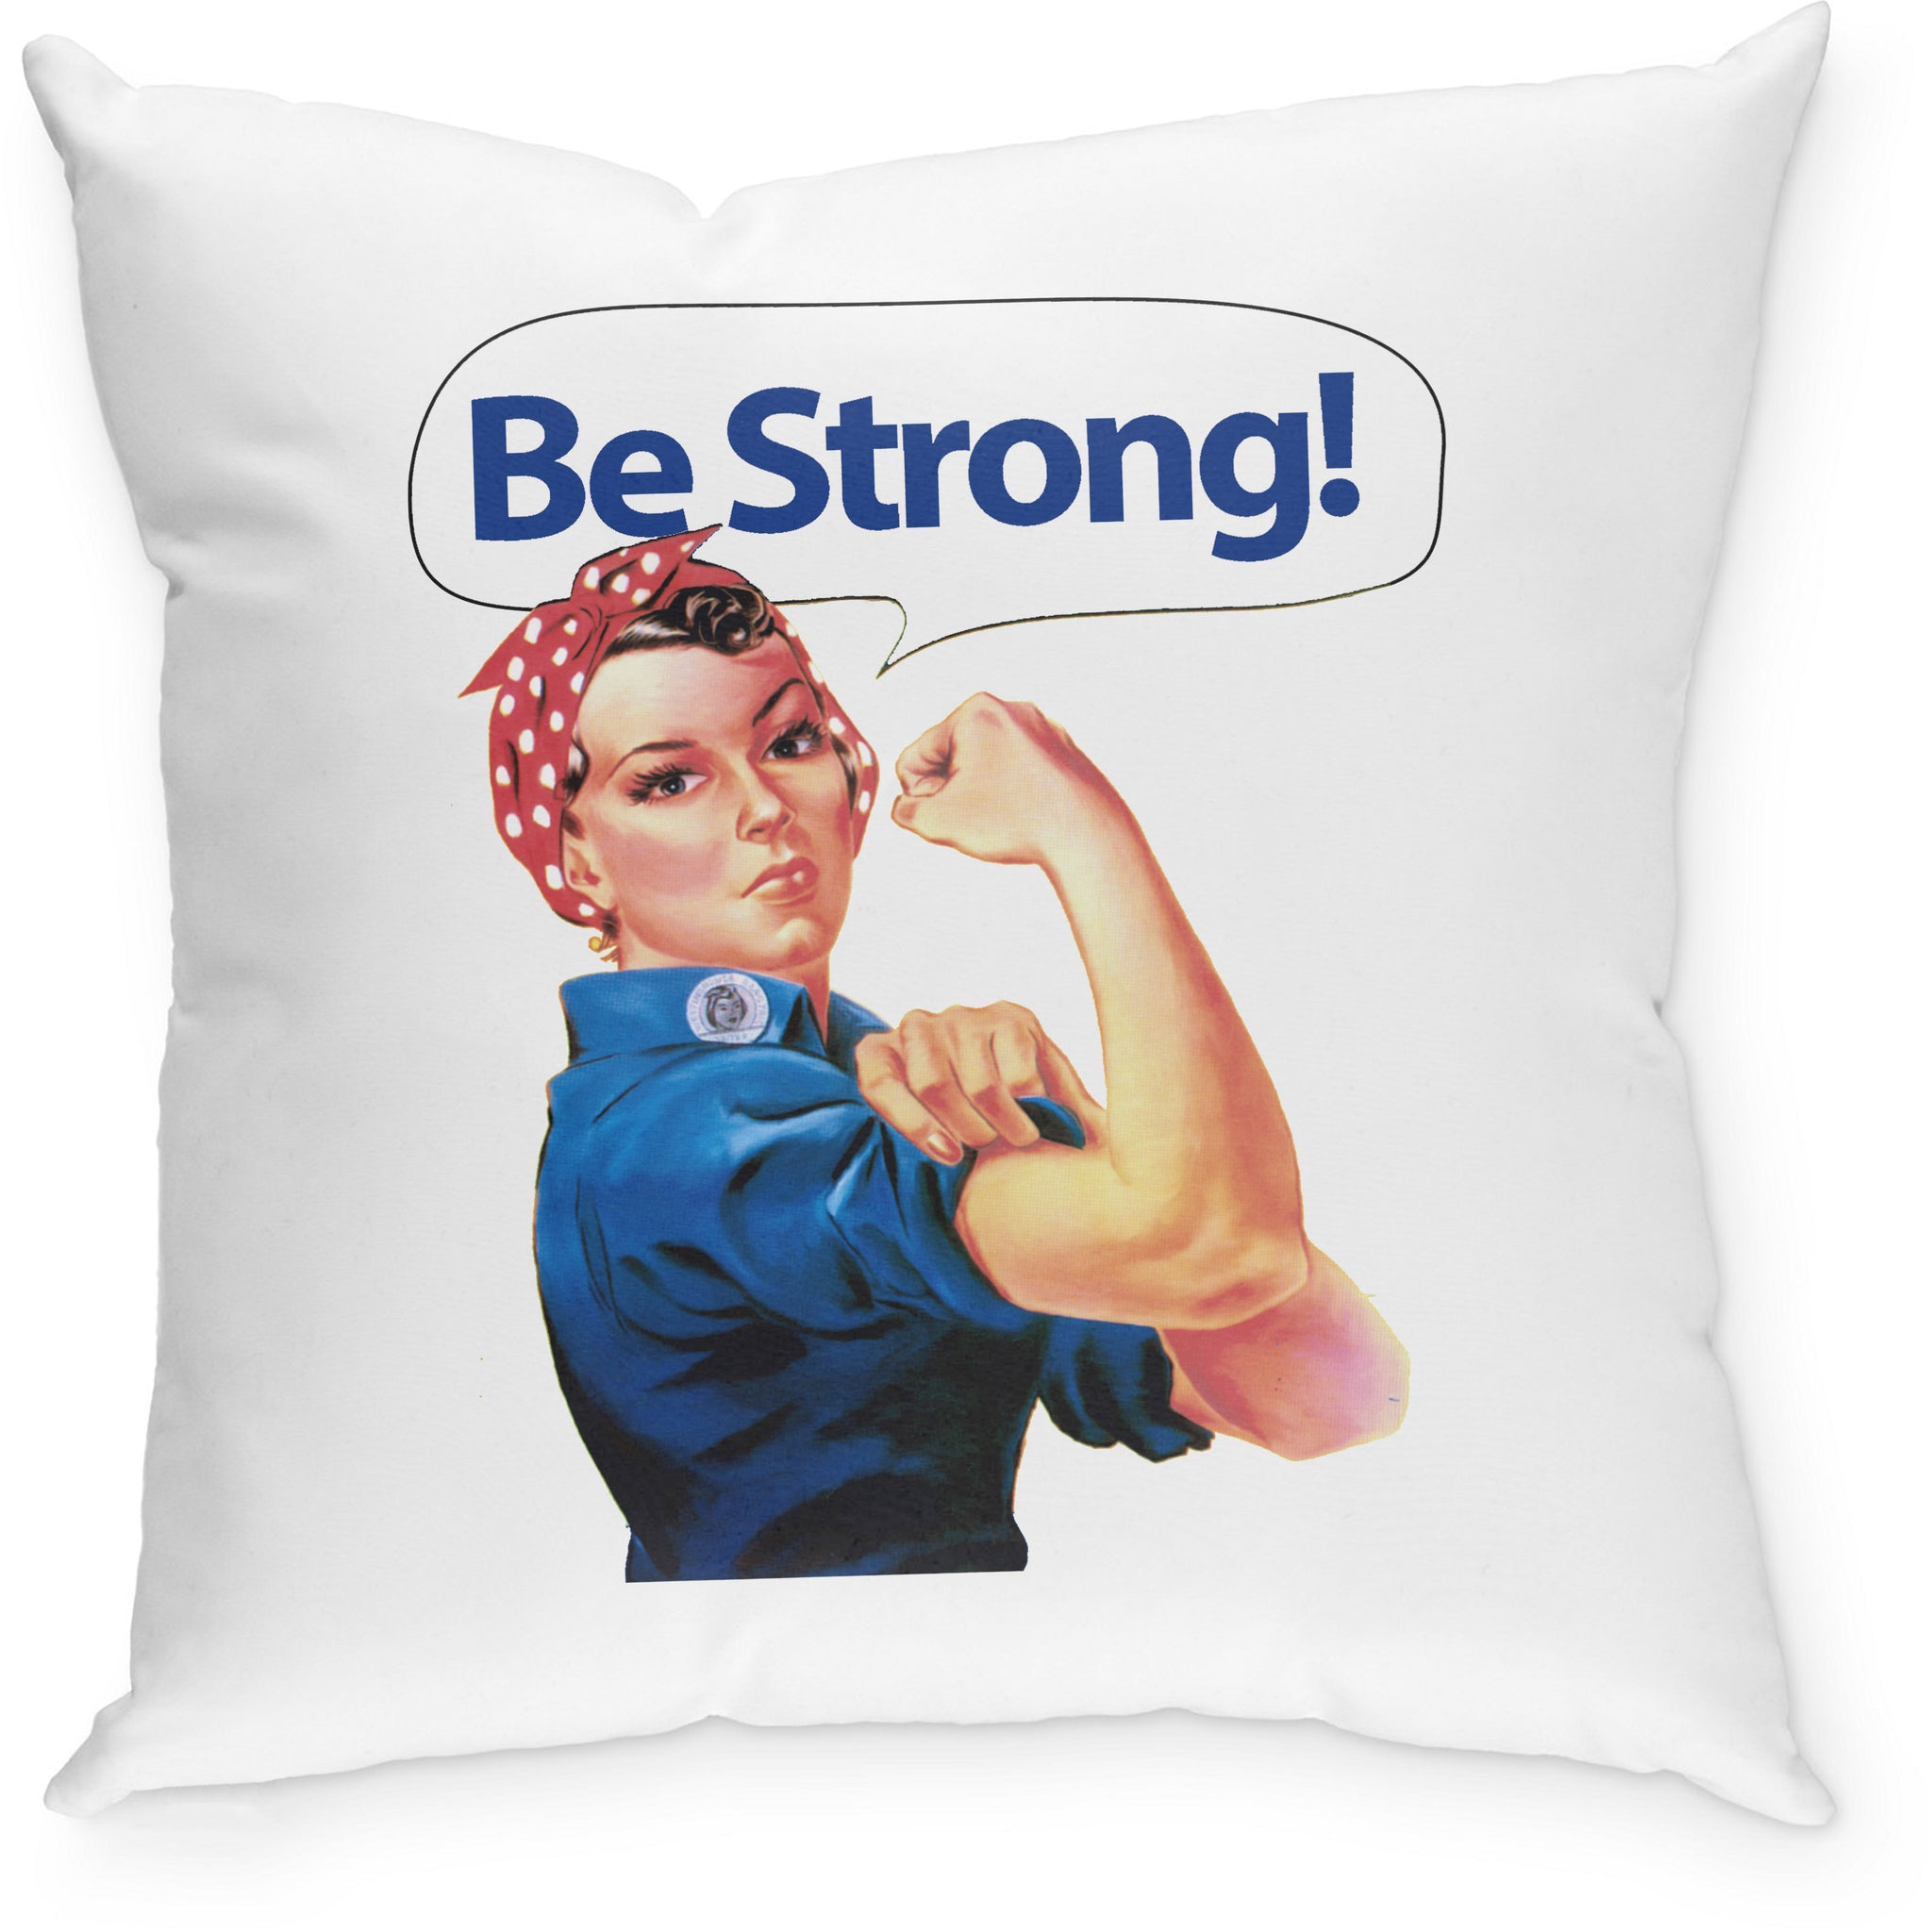 SEVENLY HOME GOODS - COTTON CANVAS THROW PILLOW - RIVET ROSIE BE STRONG